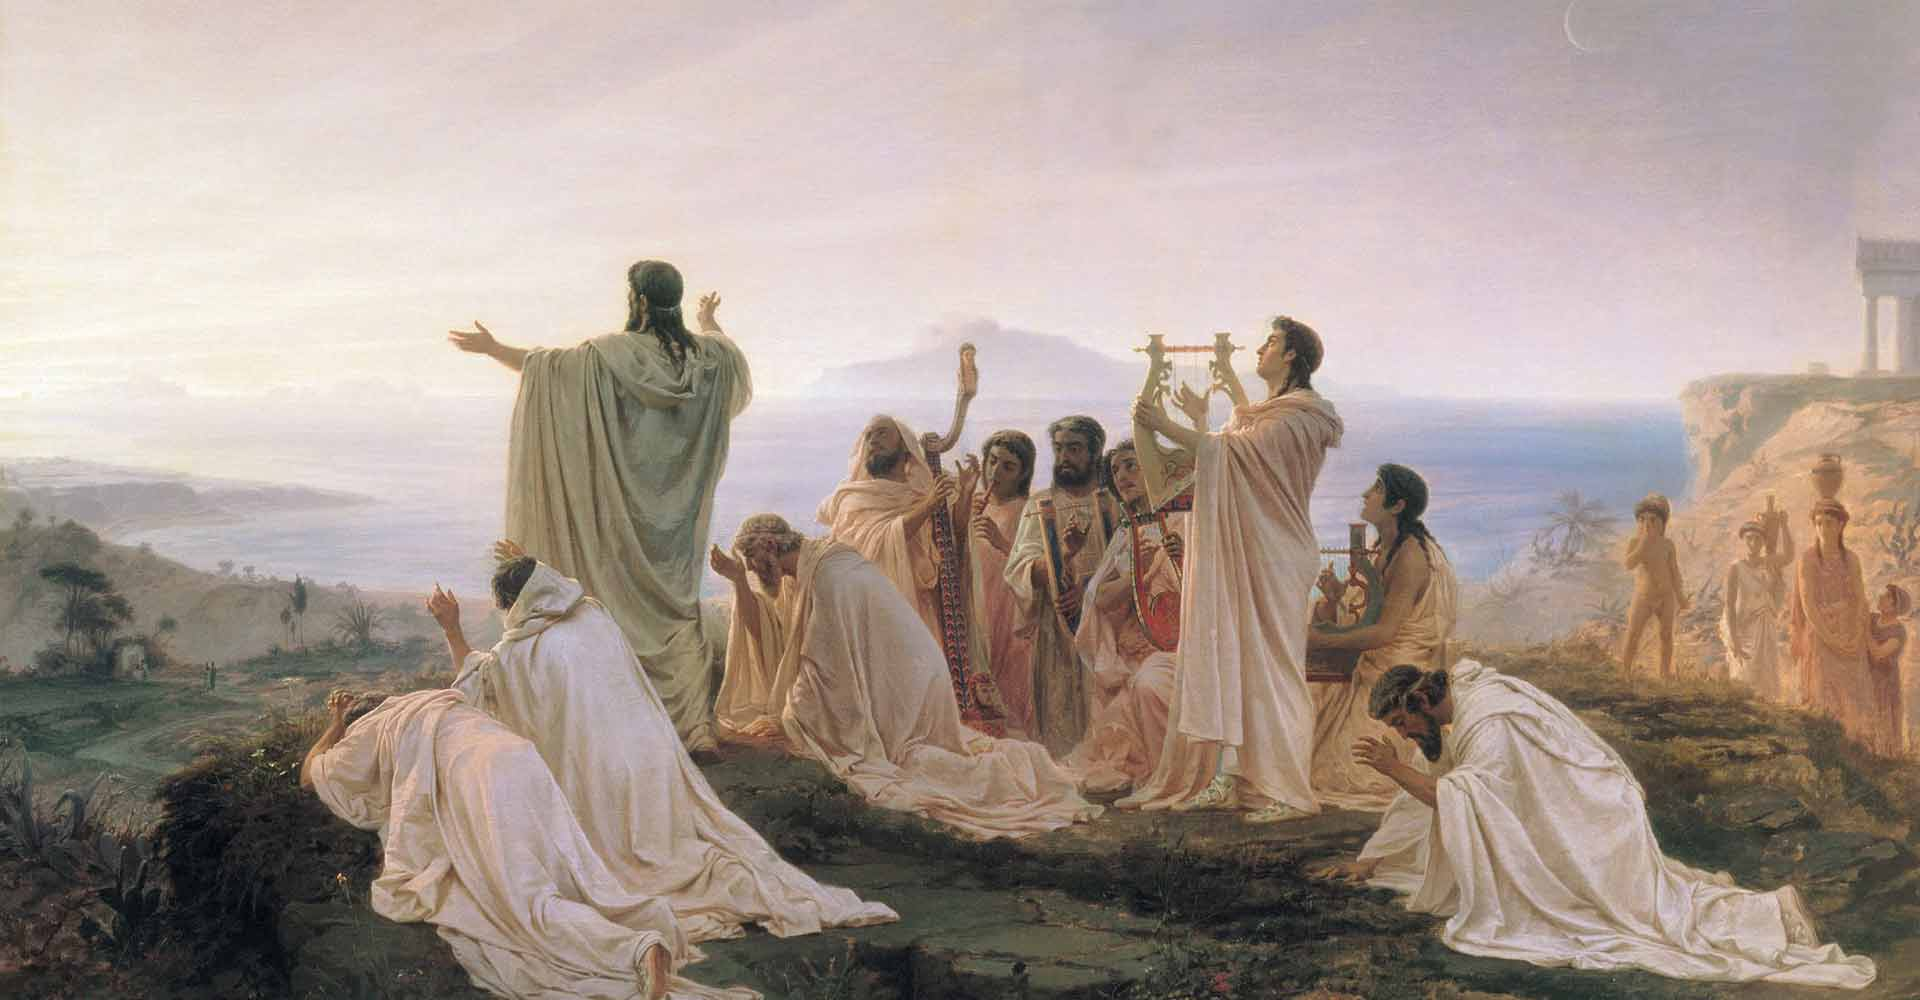 Christ teaches others to praise and worship to God, signs of Christ